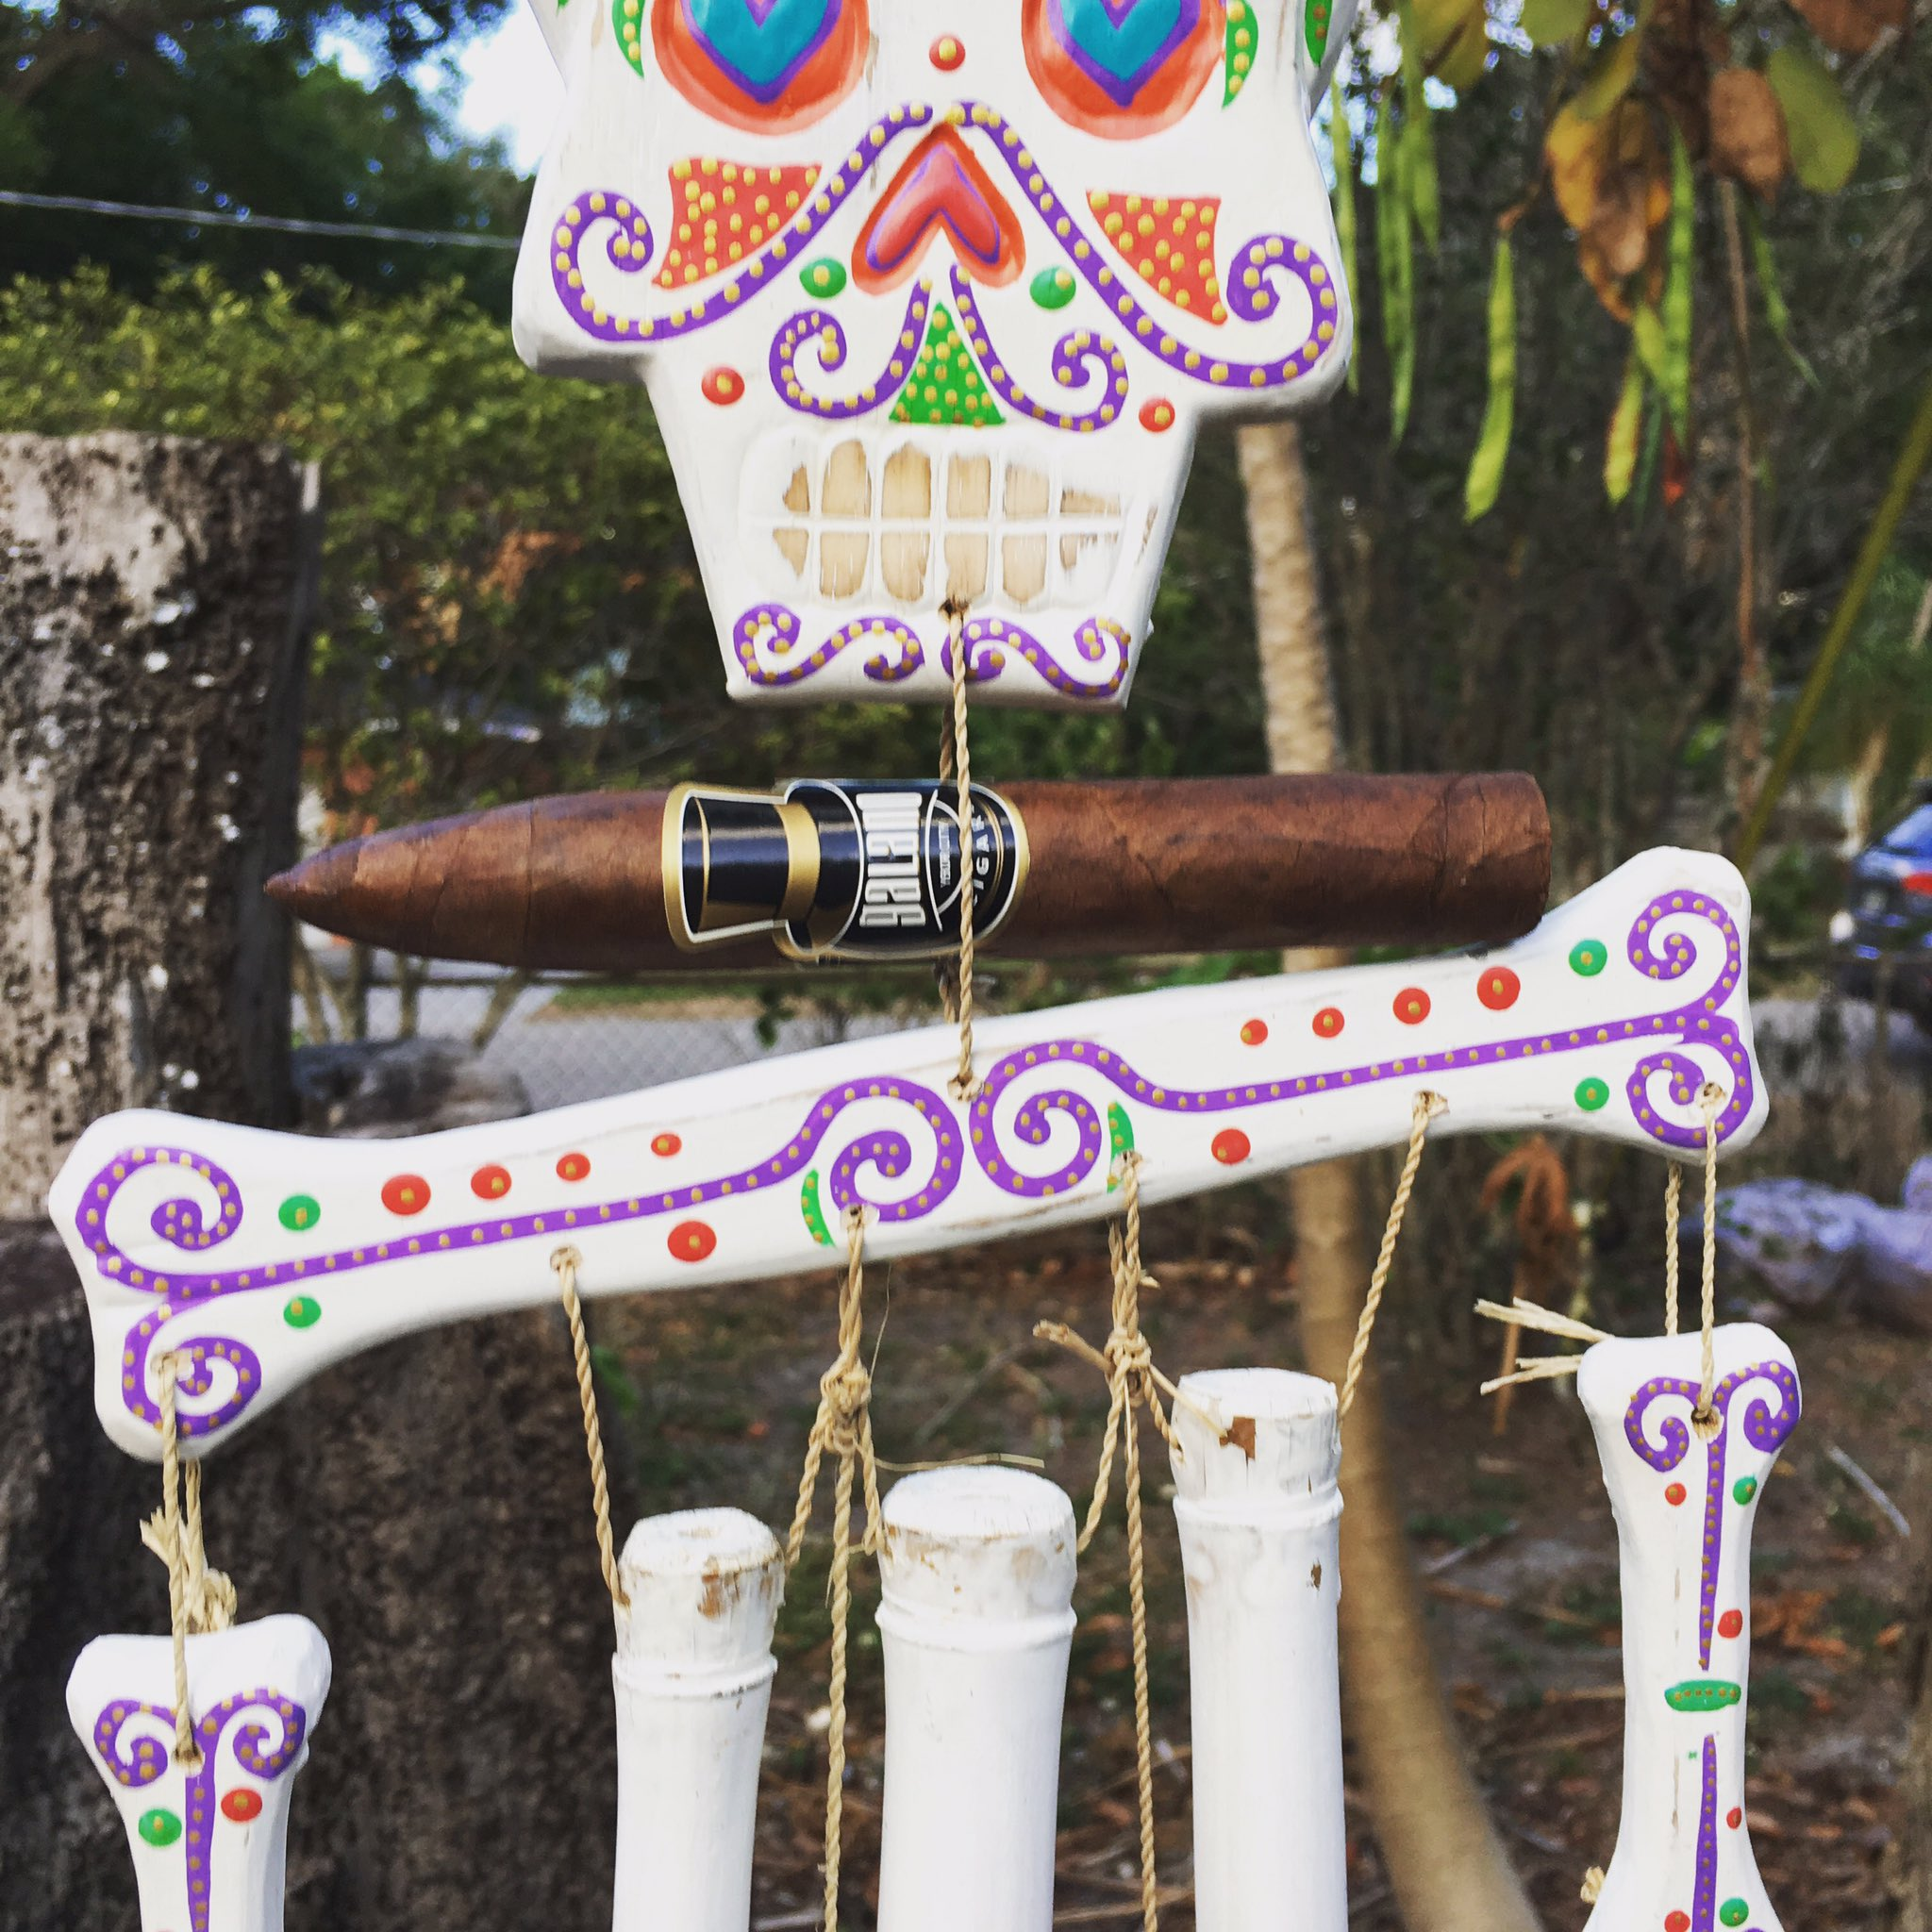 Did you know cigars make perfect wind chimes? #galanocigars #diadelosmuertos #mexico #cigar #cigars #galanocigars #cigarsociety https://t.co/PYuMdp3GWd